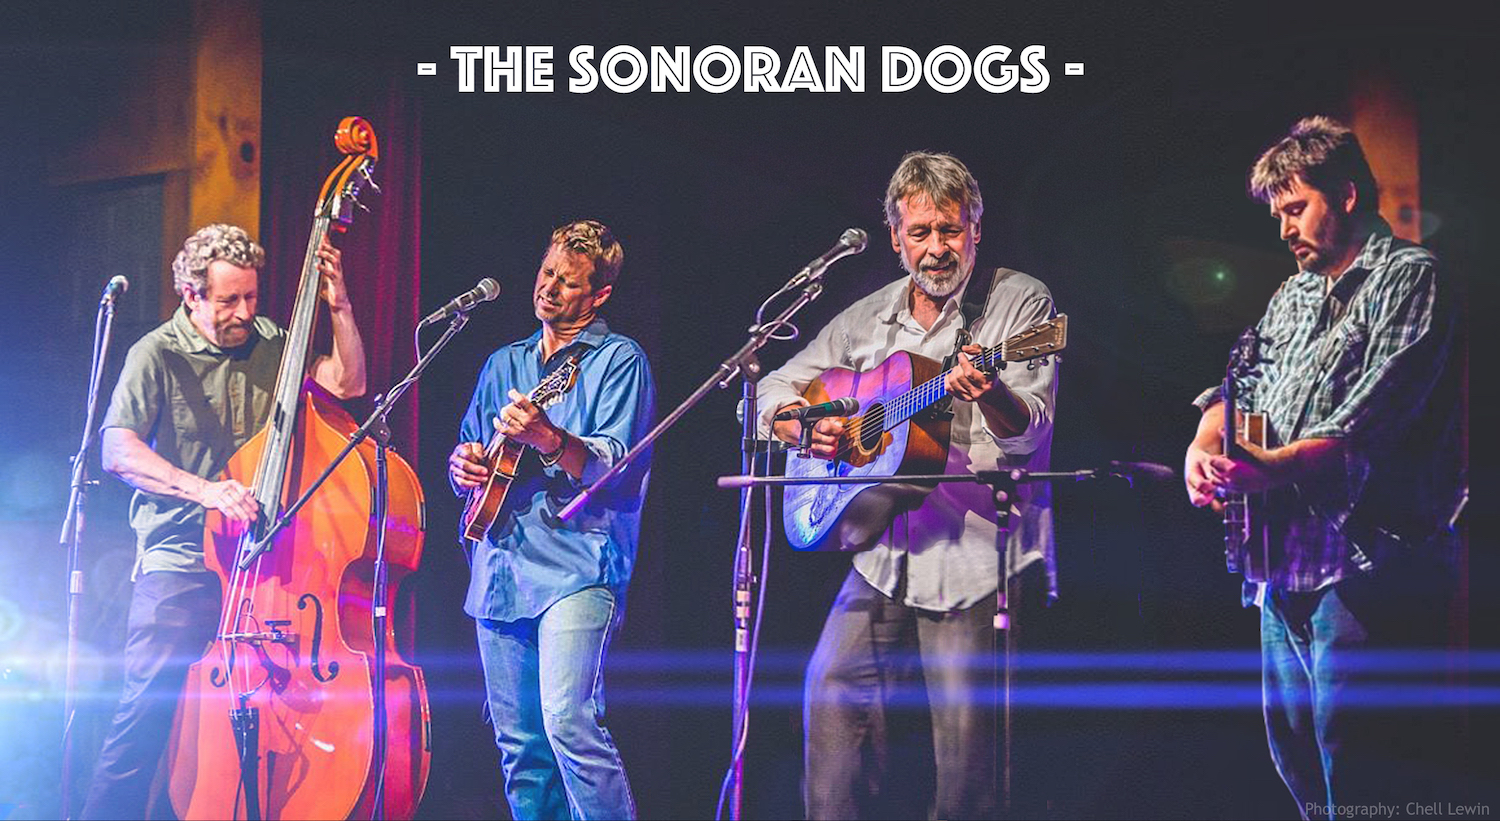 The Sonoran Dogs